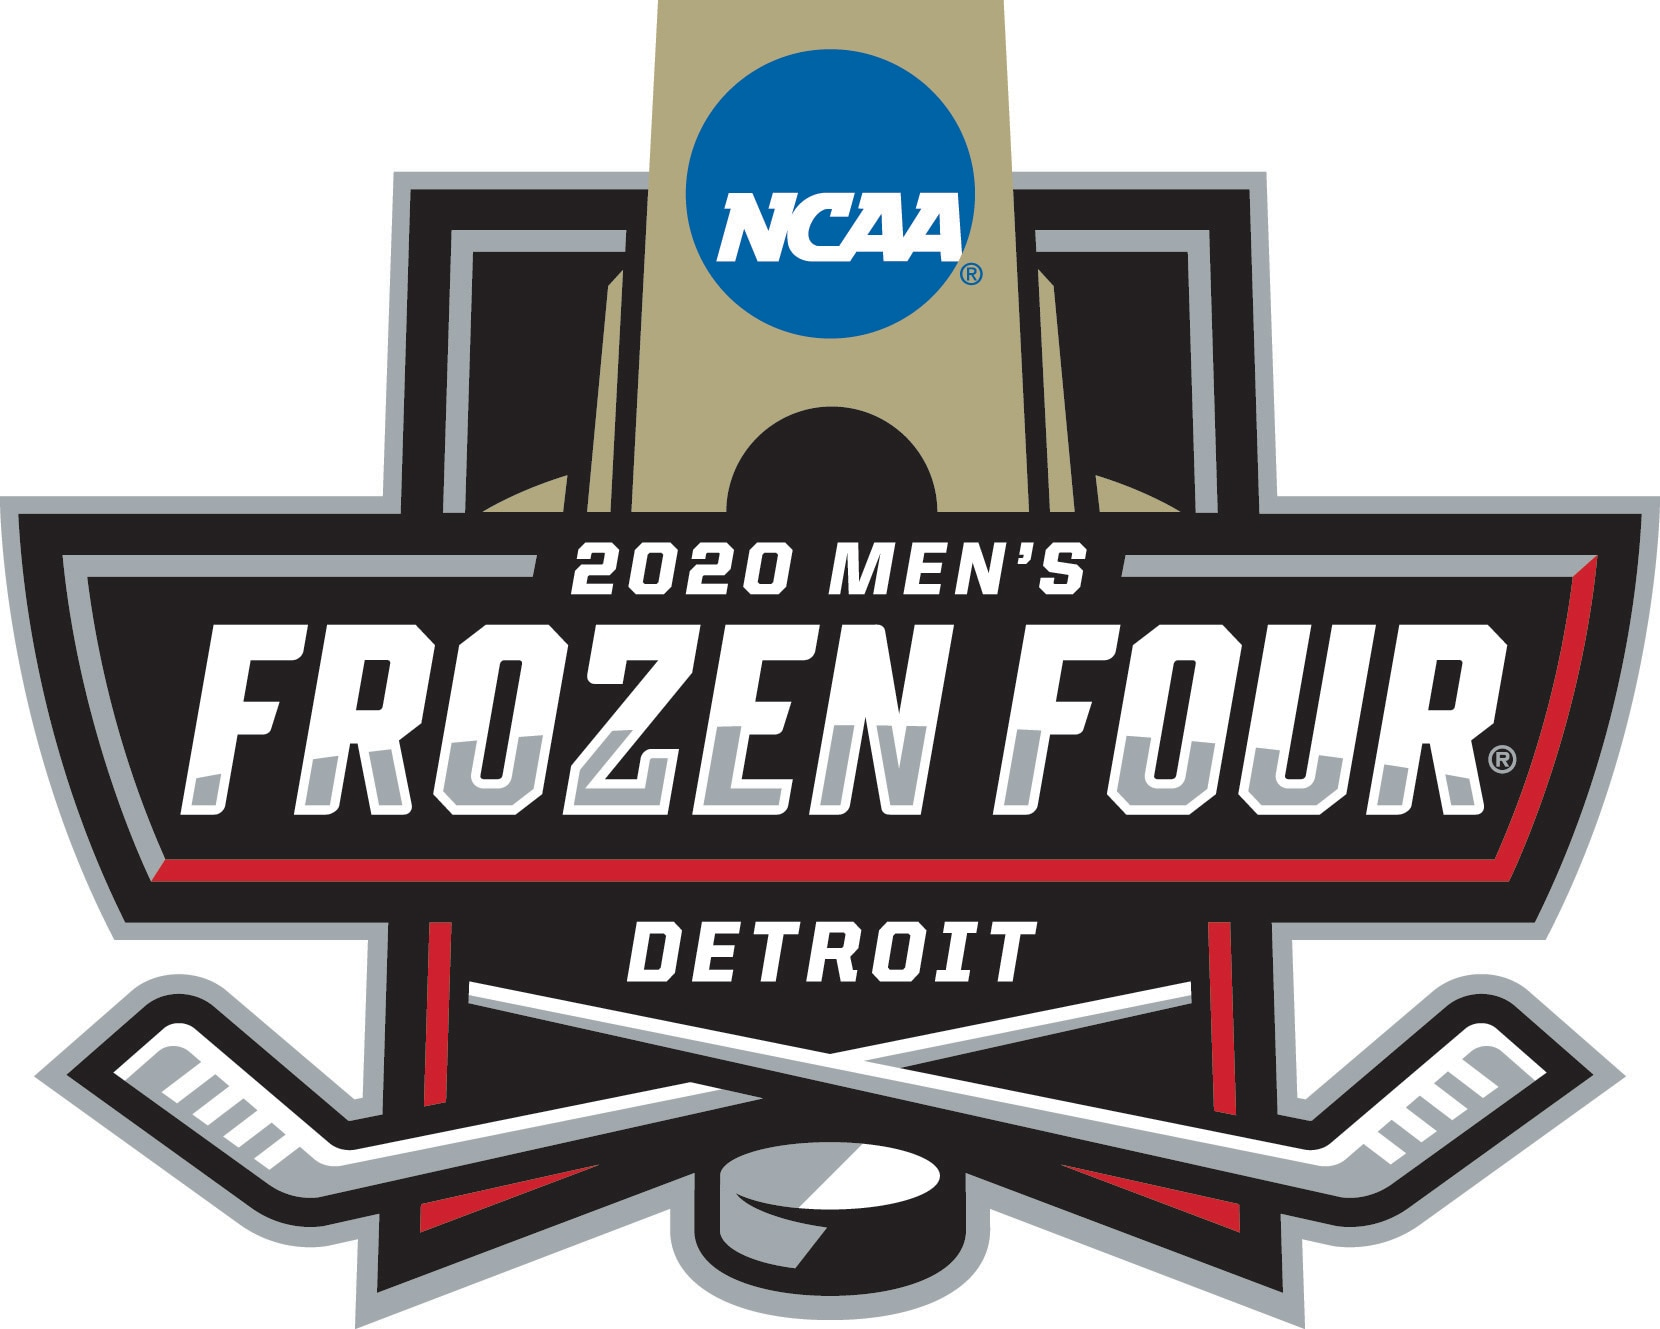 2020 DI Men's Ice Hockey Championship and Frozen Four